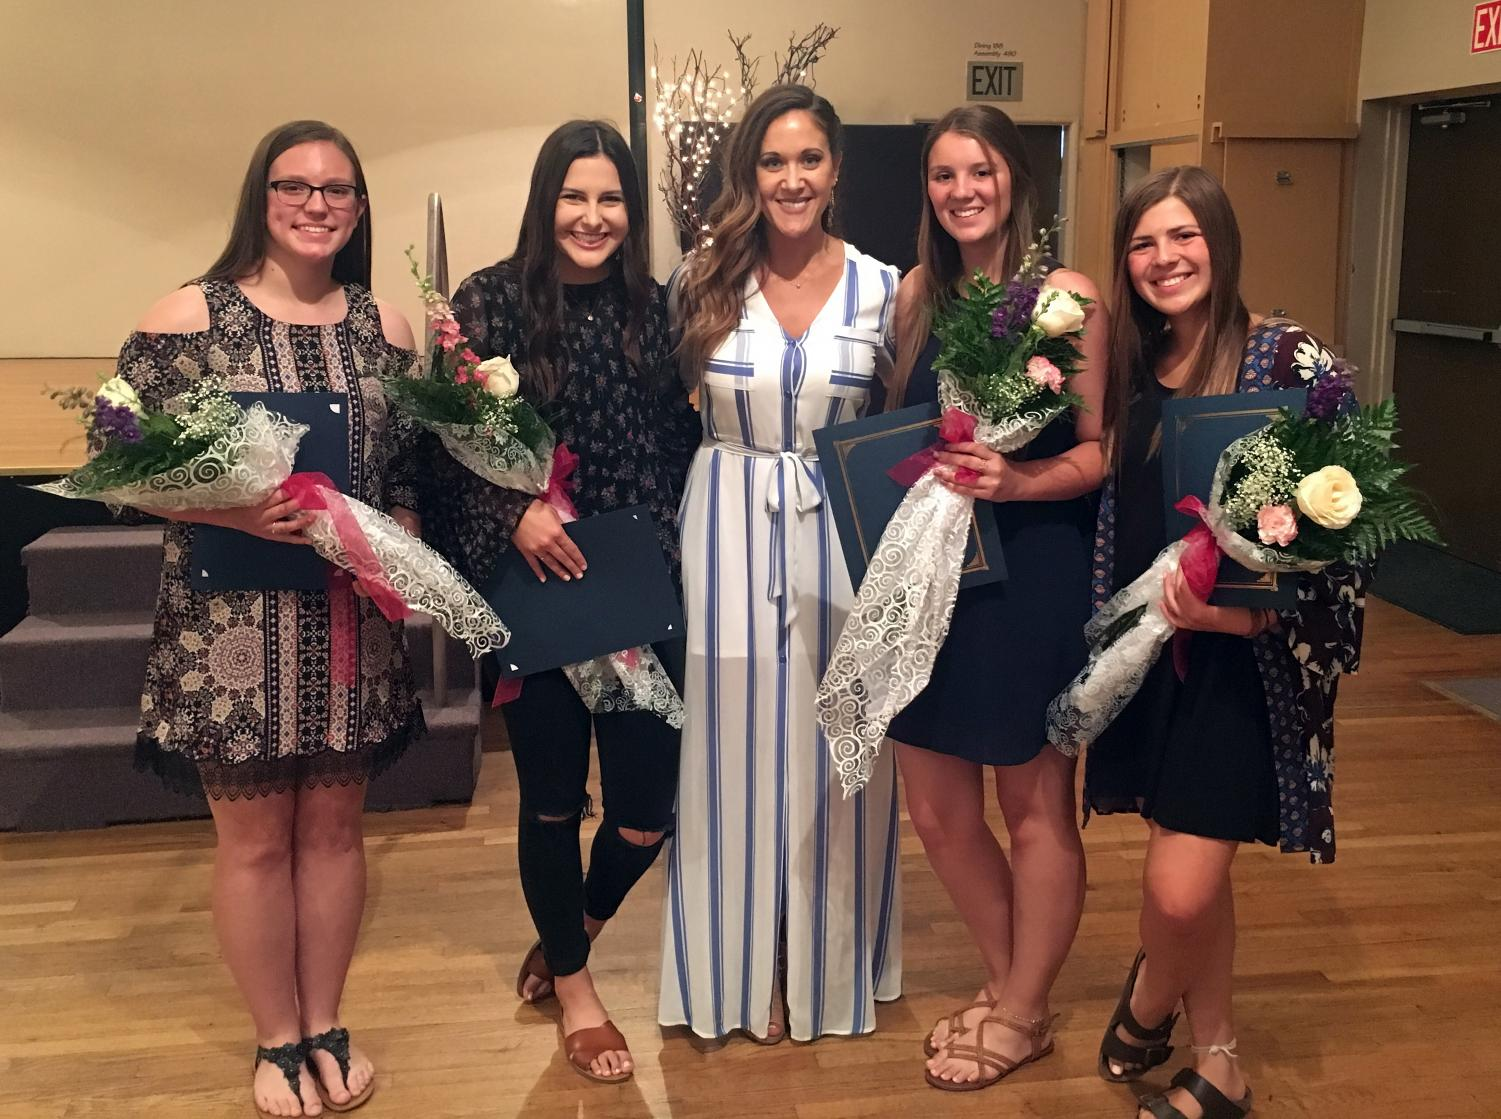 Emmy Lou Heber, S-Club Adviser, and the award recipients: Alison Moon (Grade 12), Madison Jordan (Grade 11), Regan Barnachia (Grade 10), and Emalyne Davis (Grade 9)